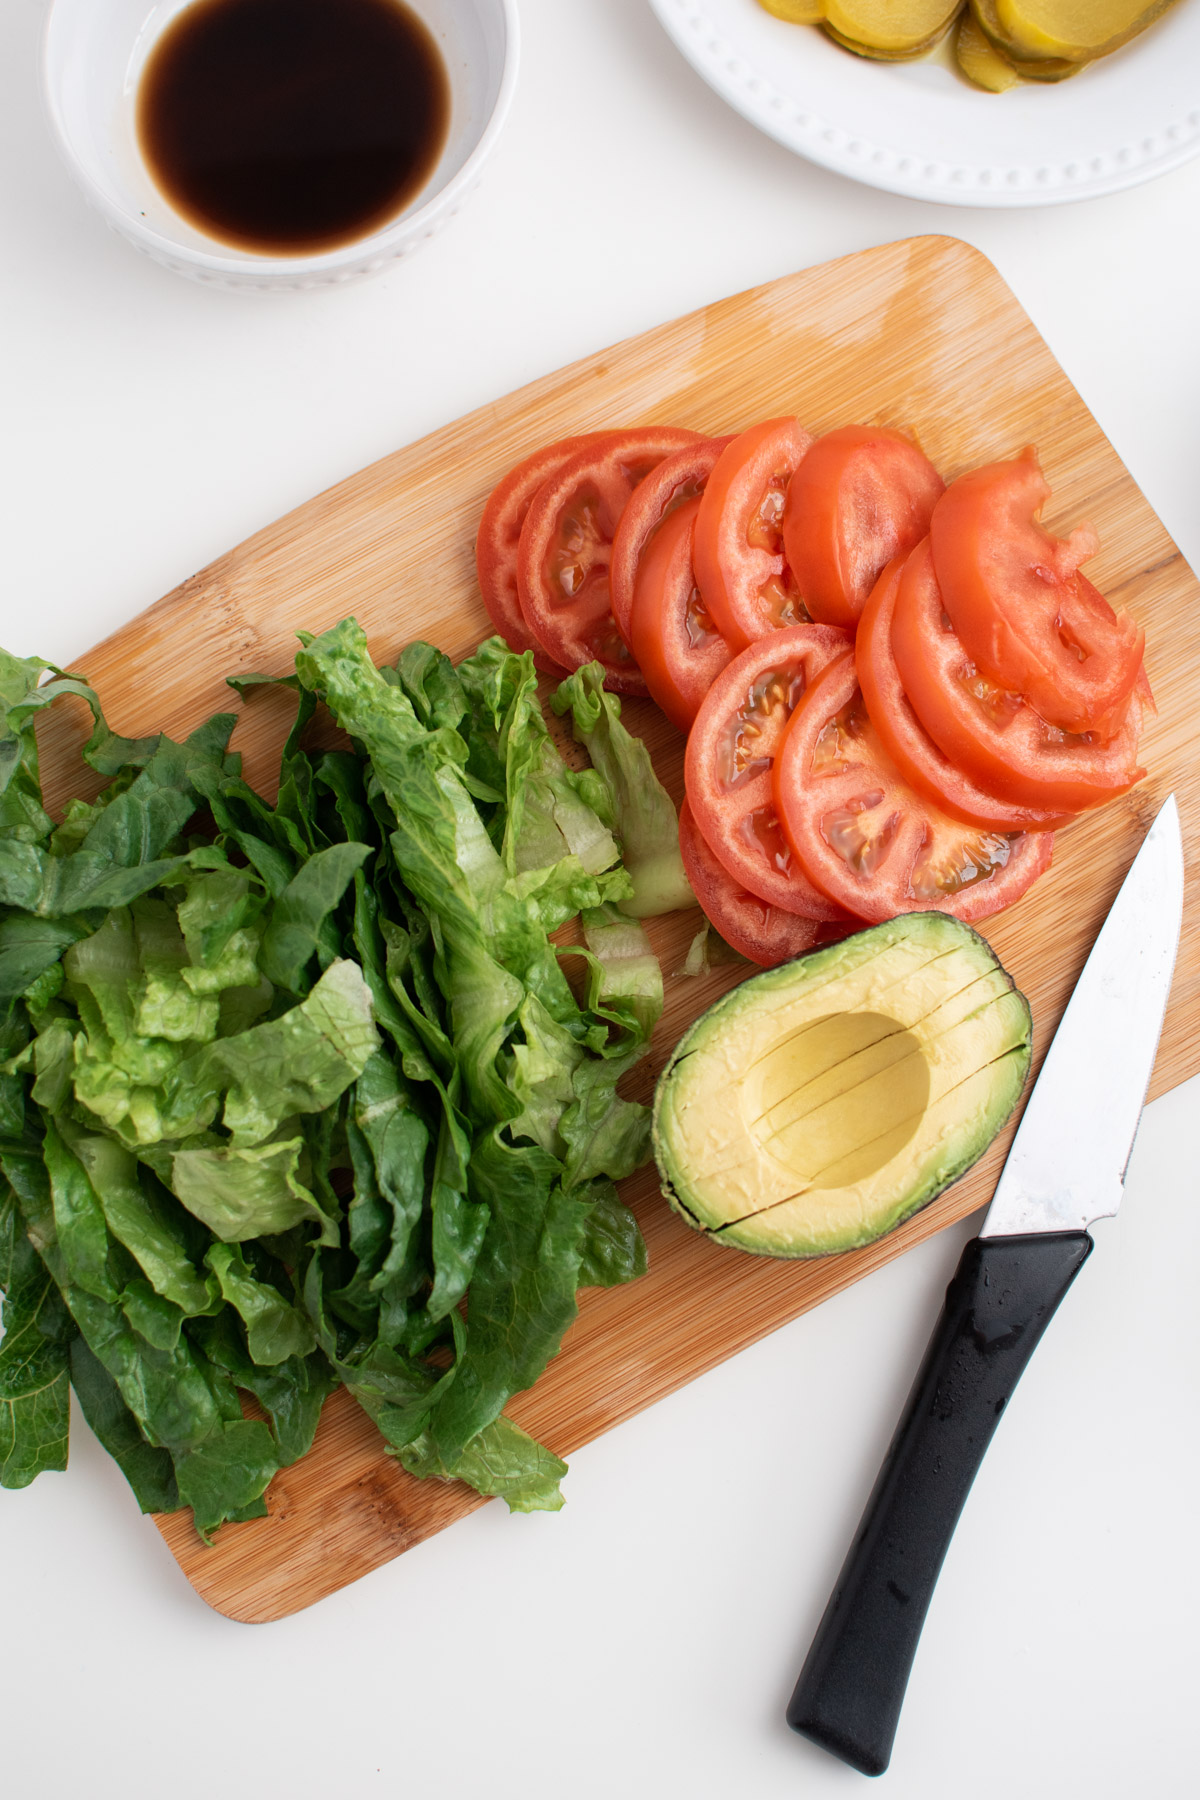 Chopped tomatoes, avocado and lettuce on wooden cutting board with kitchen knife.